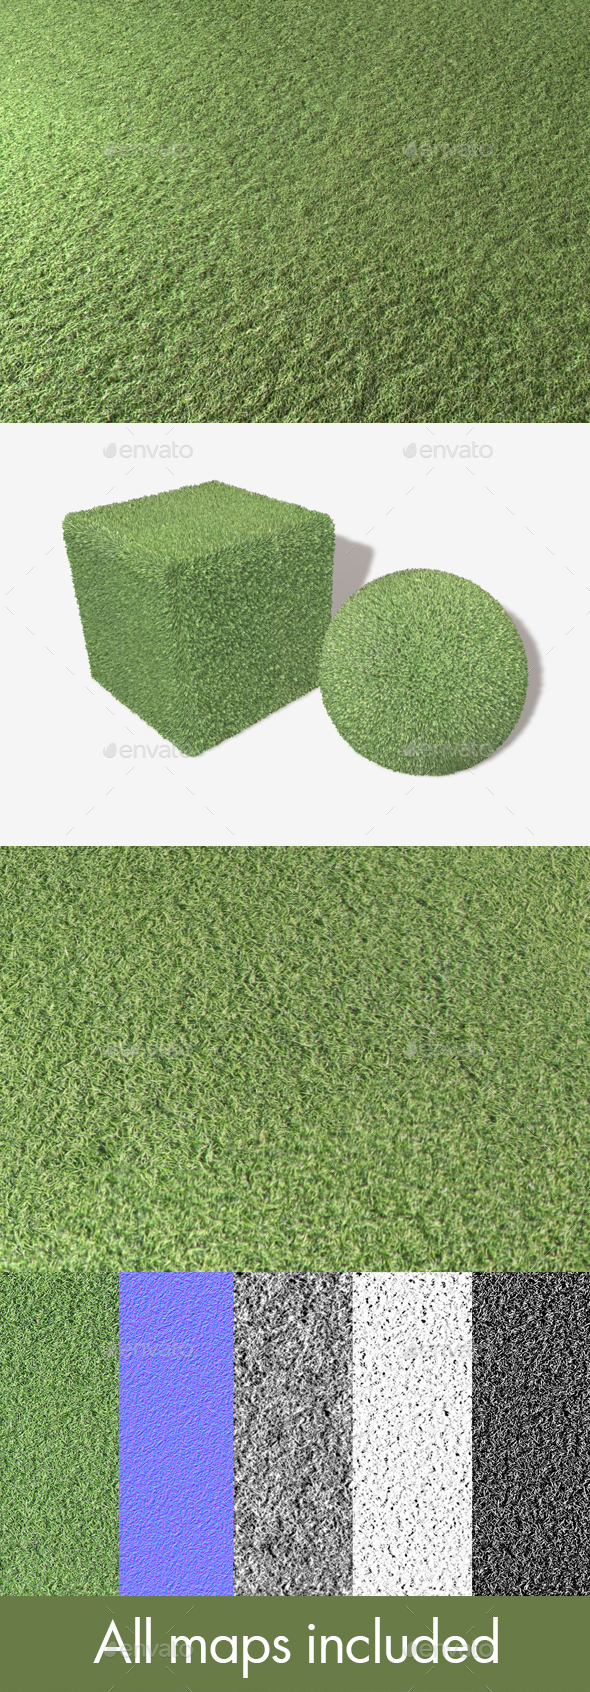 Artificial Plastic Turf Seamless Texture - 3DOcean Item for Sale